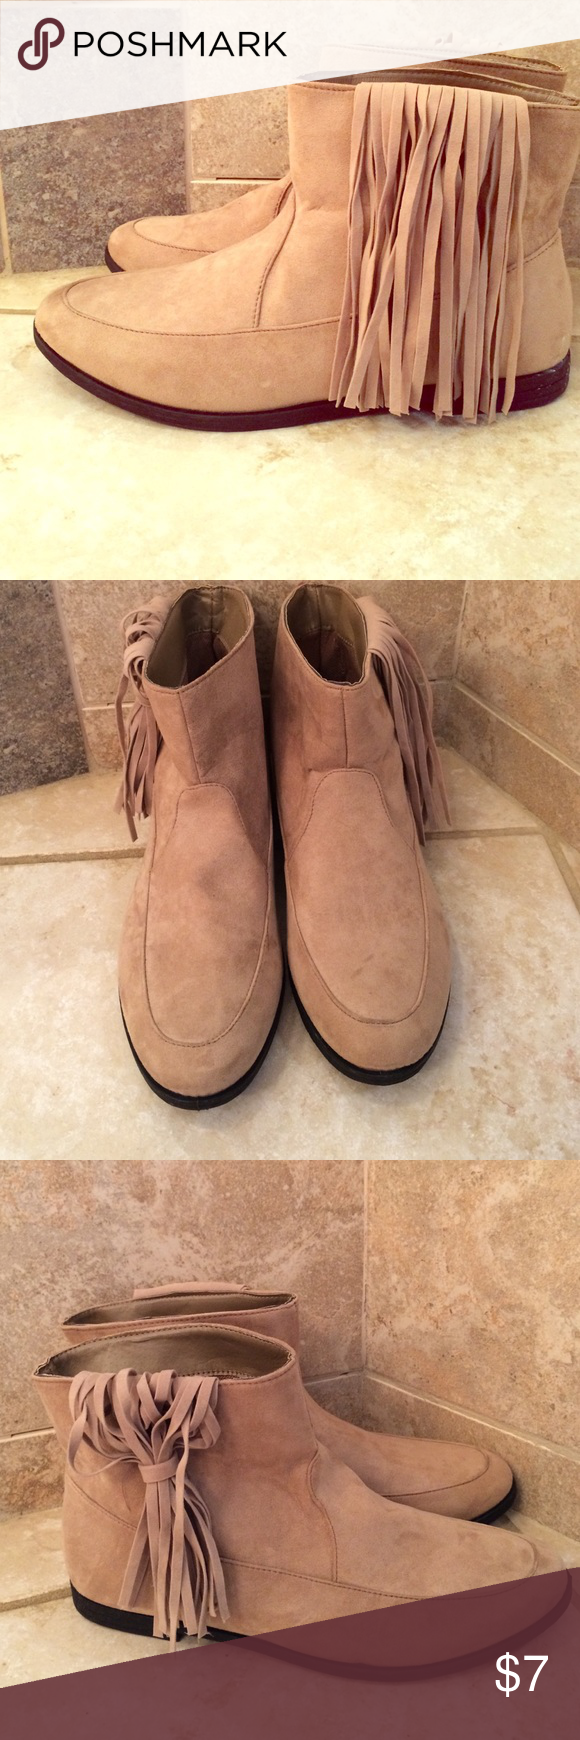 Moccasin Boots Brand New w/o tags size 7/8 Ect. Shoes Ankle Boots & Booties